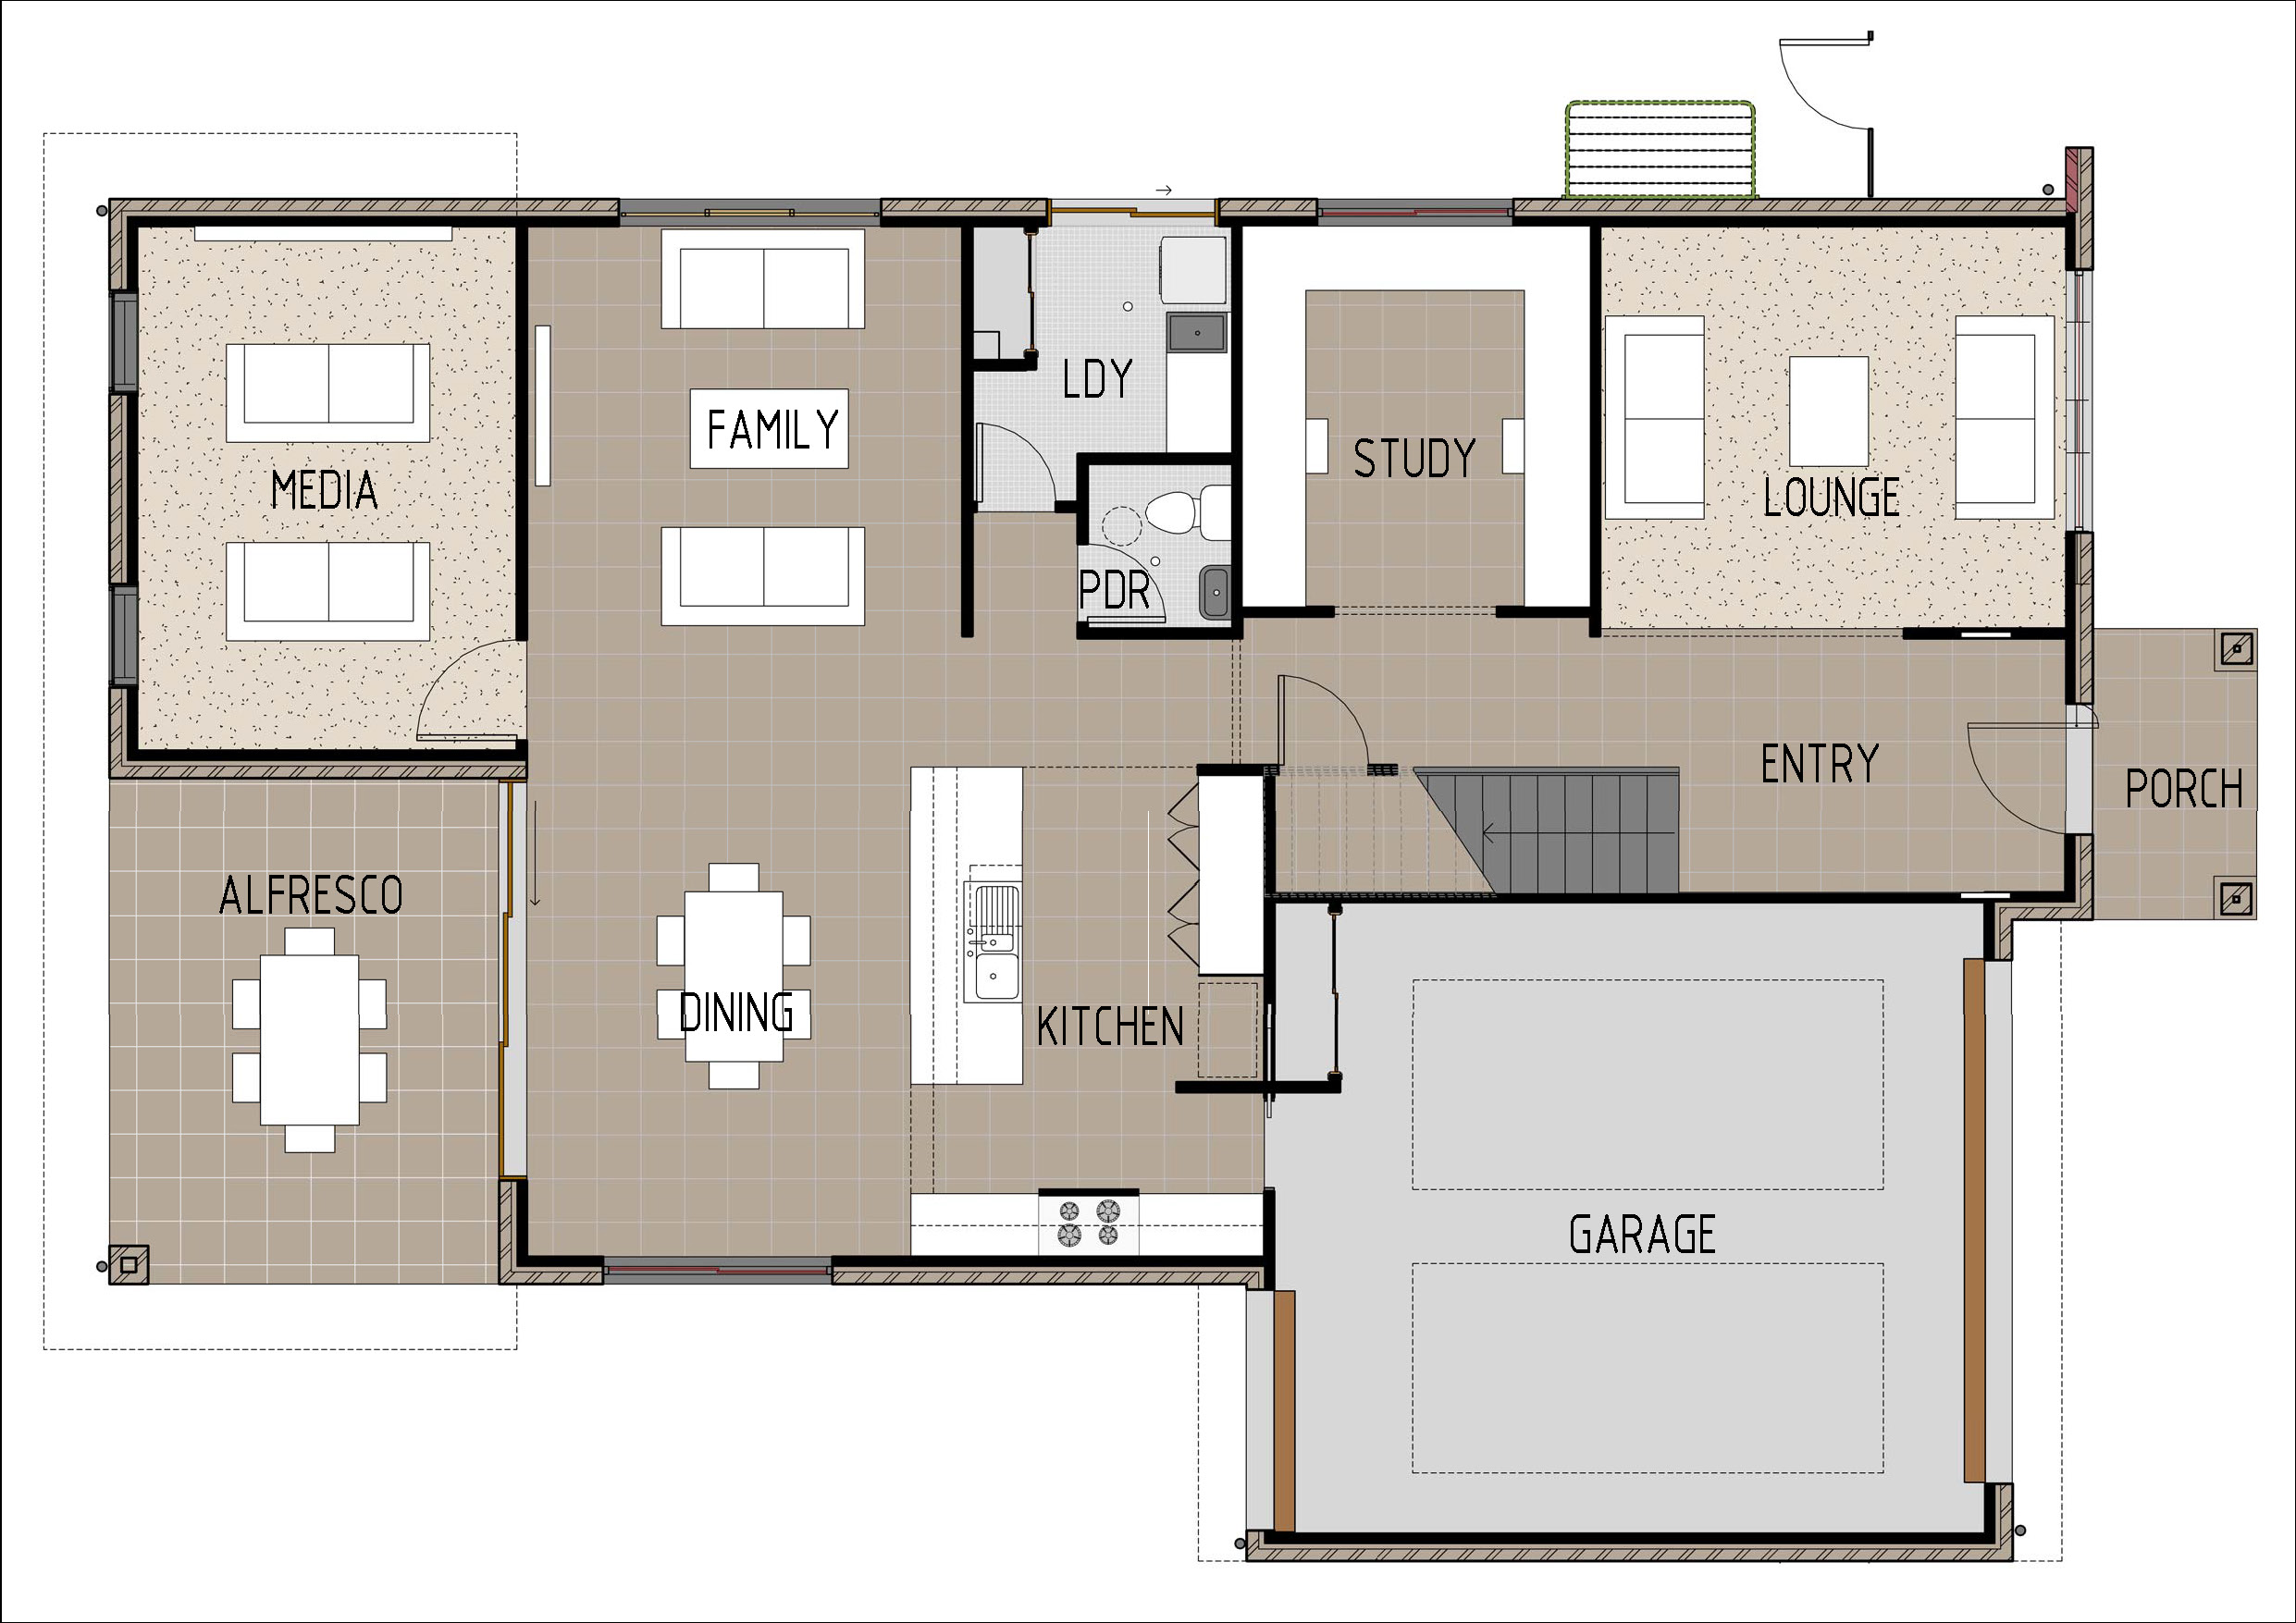 T4001 - GROUND FLOOR PLAN.jpg